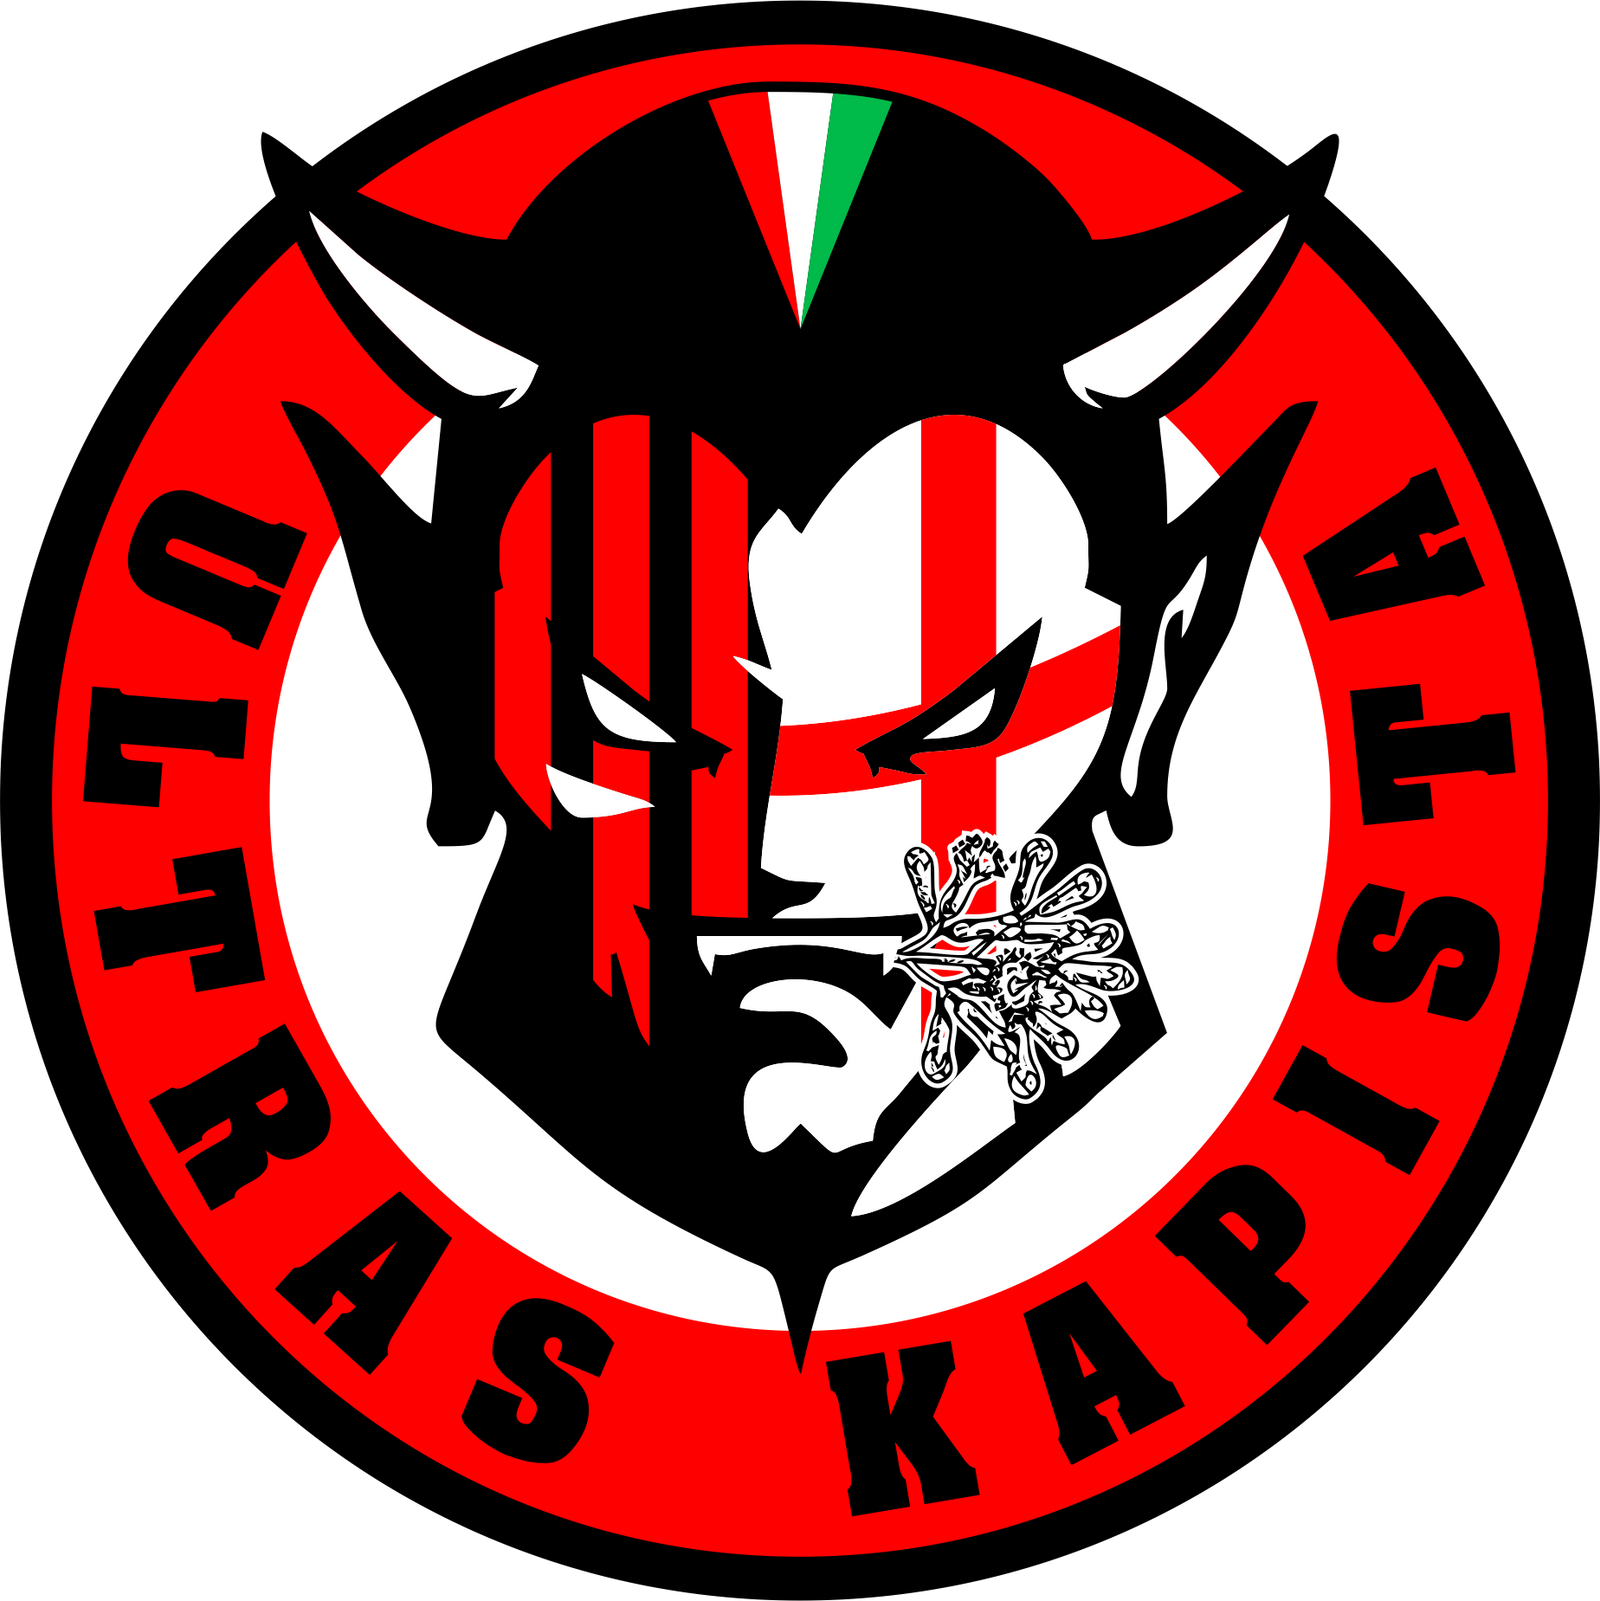 ultras kapista sonder by dyrealsa on deviantart